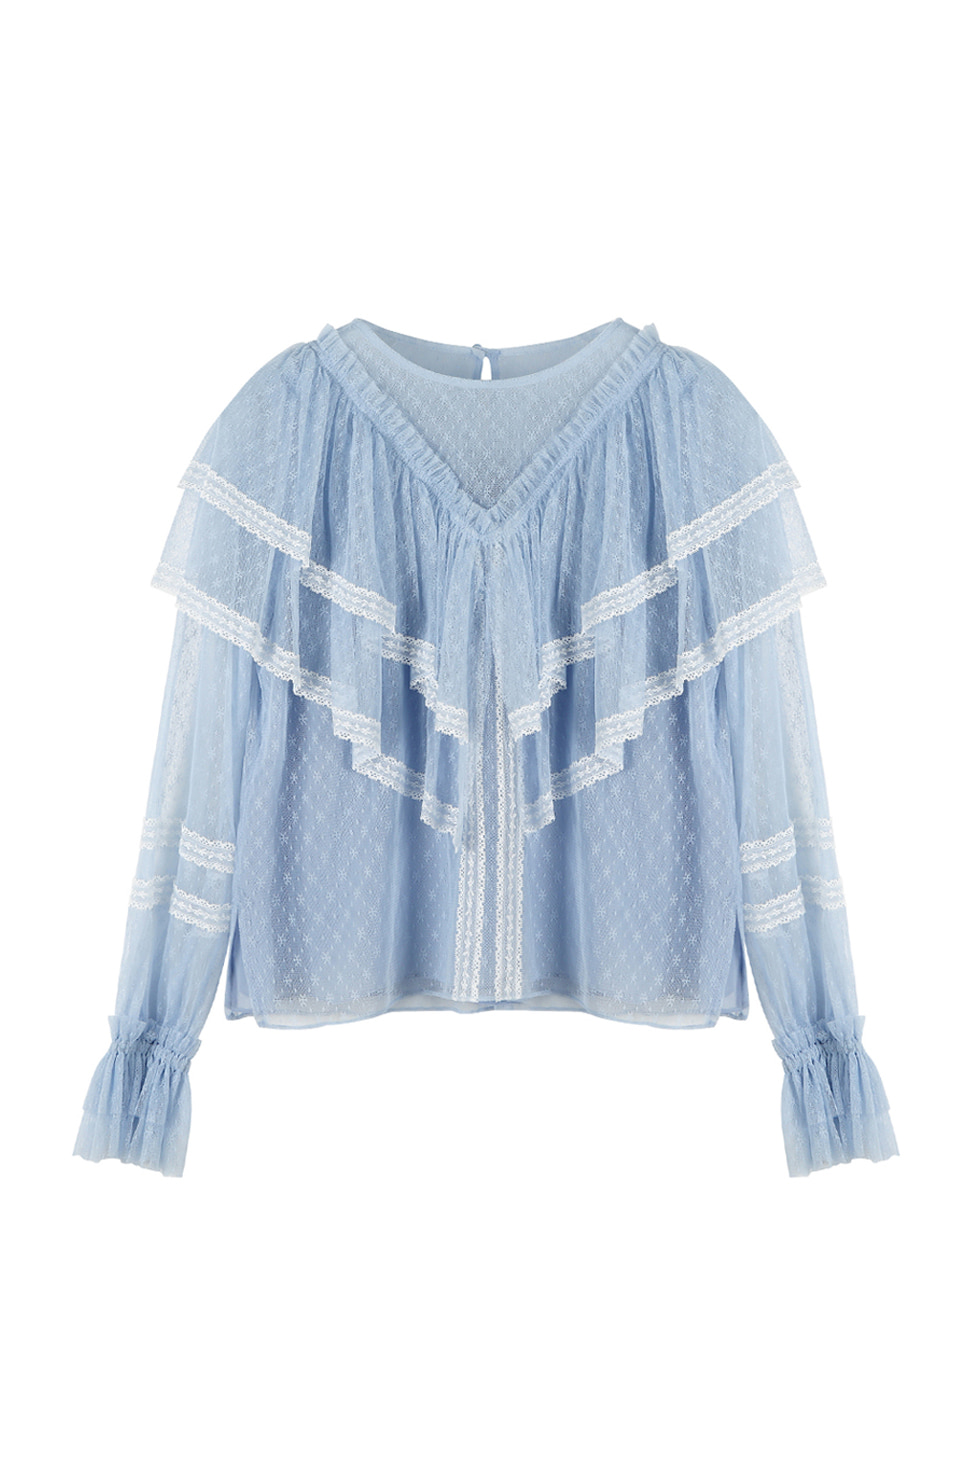 LACE RUFFLE BLOUSE - BLUE